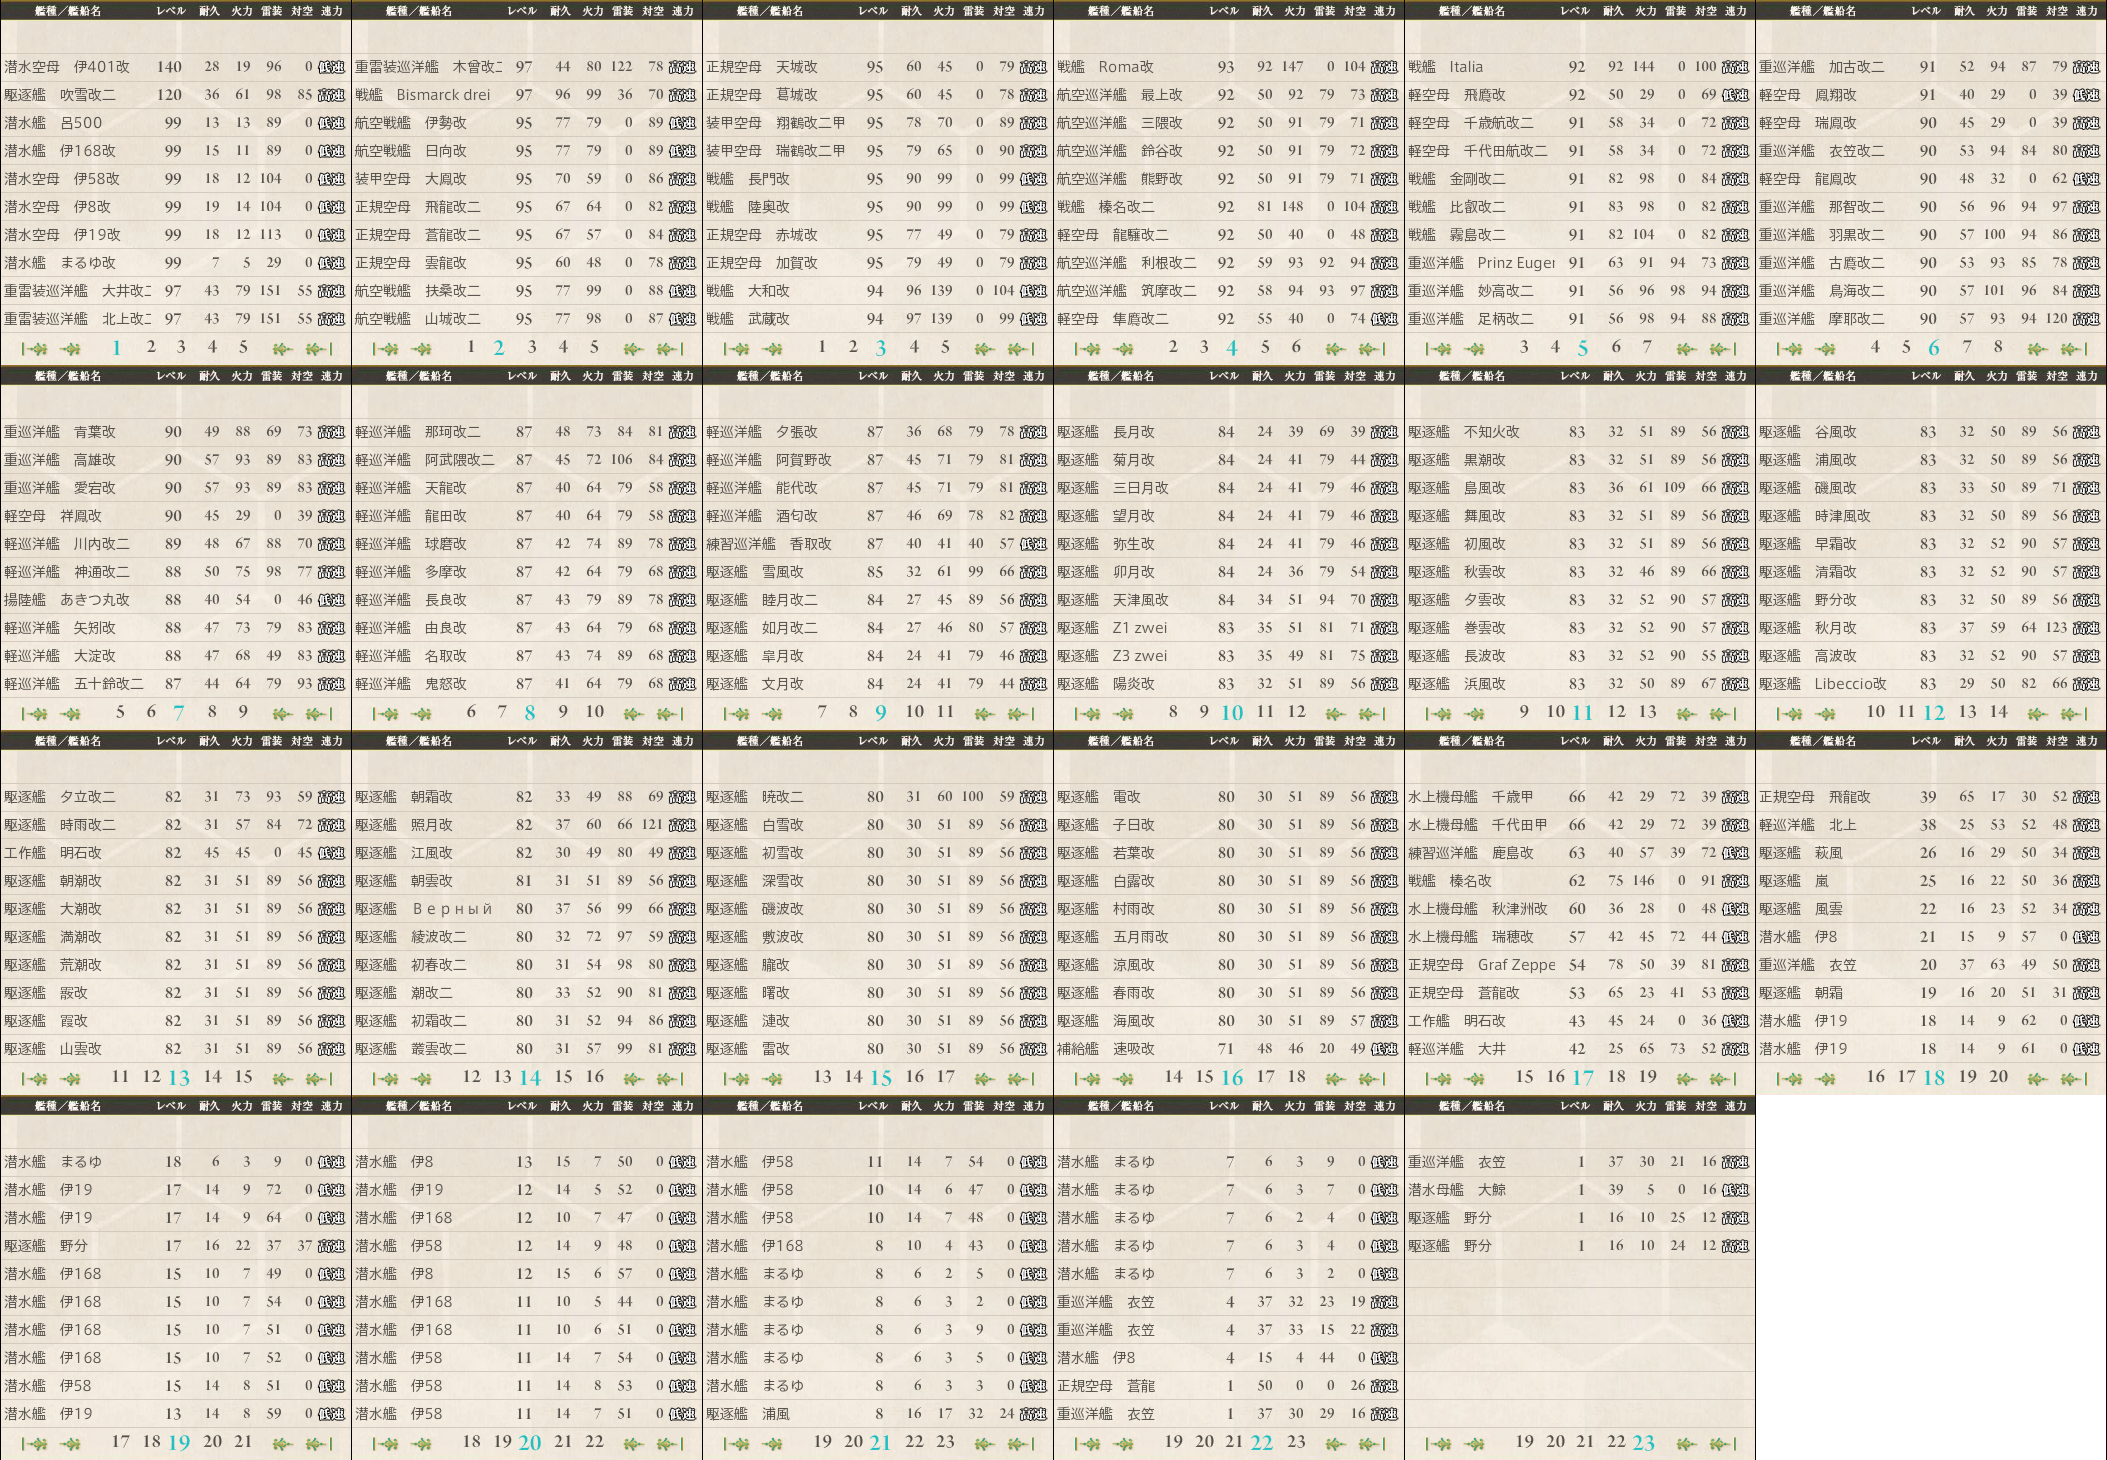 data.kancolle.levelsort.20151213.png